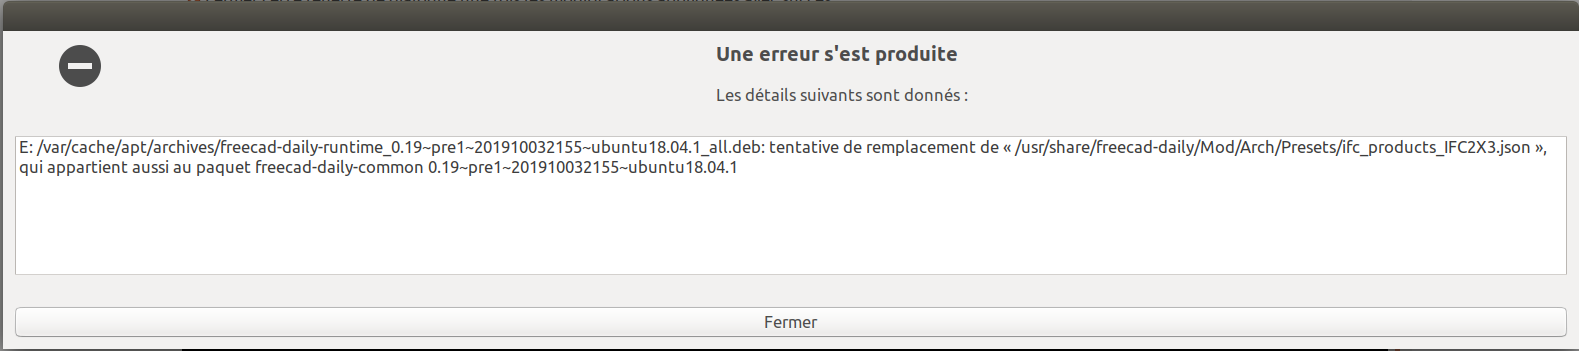 erreur dans synaptic mise à jour freecaddaily runtime 1.png